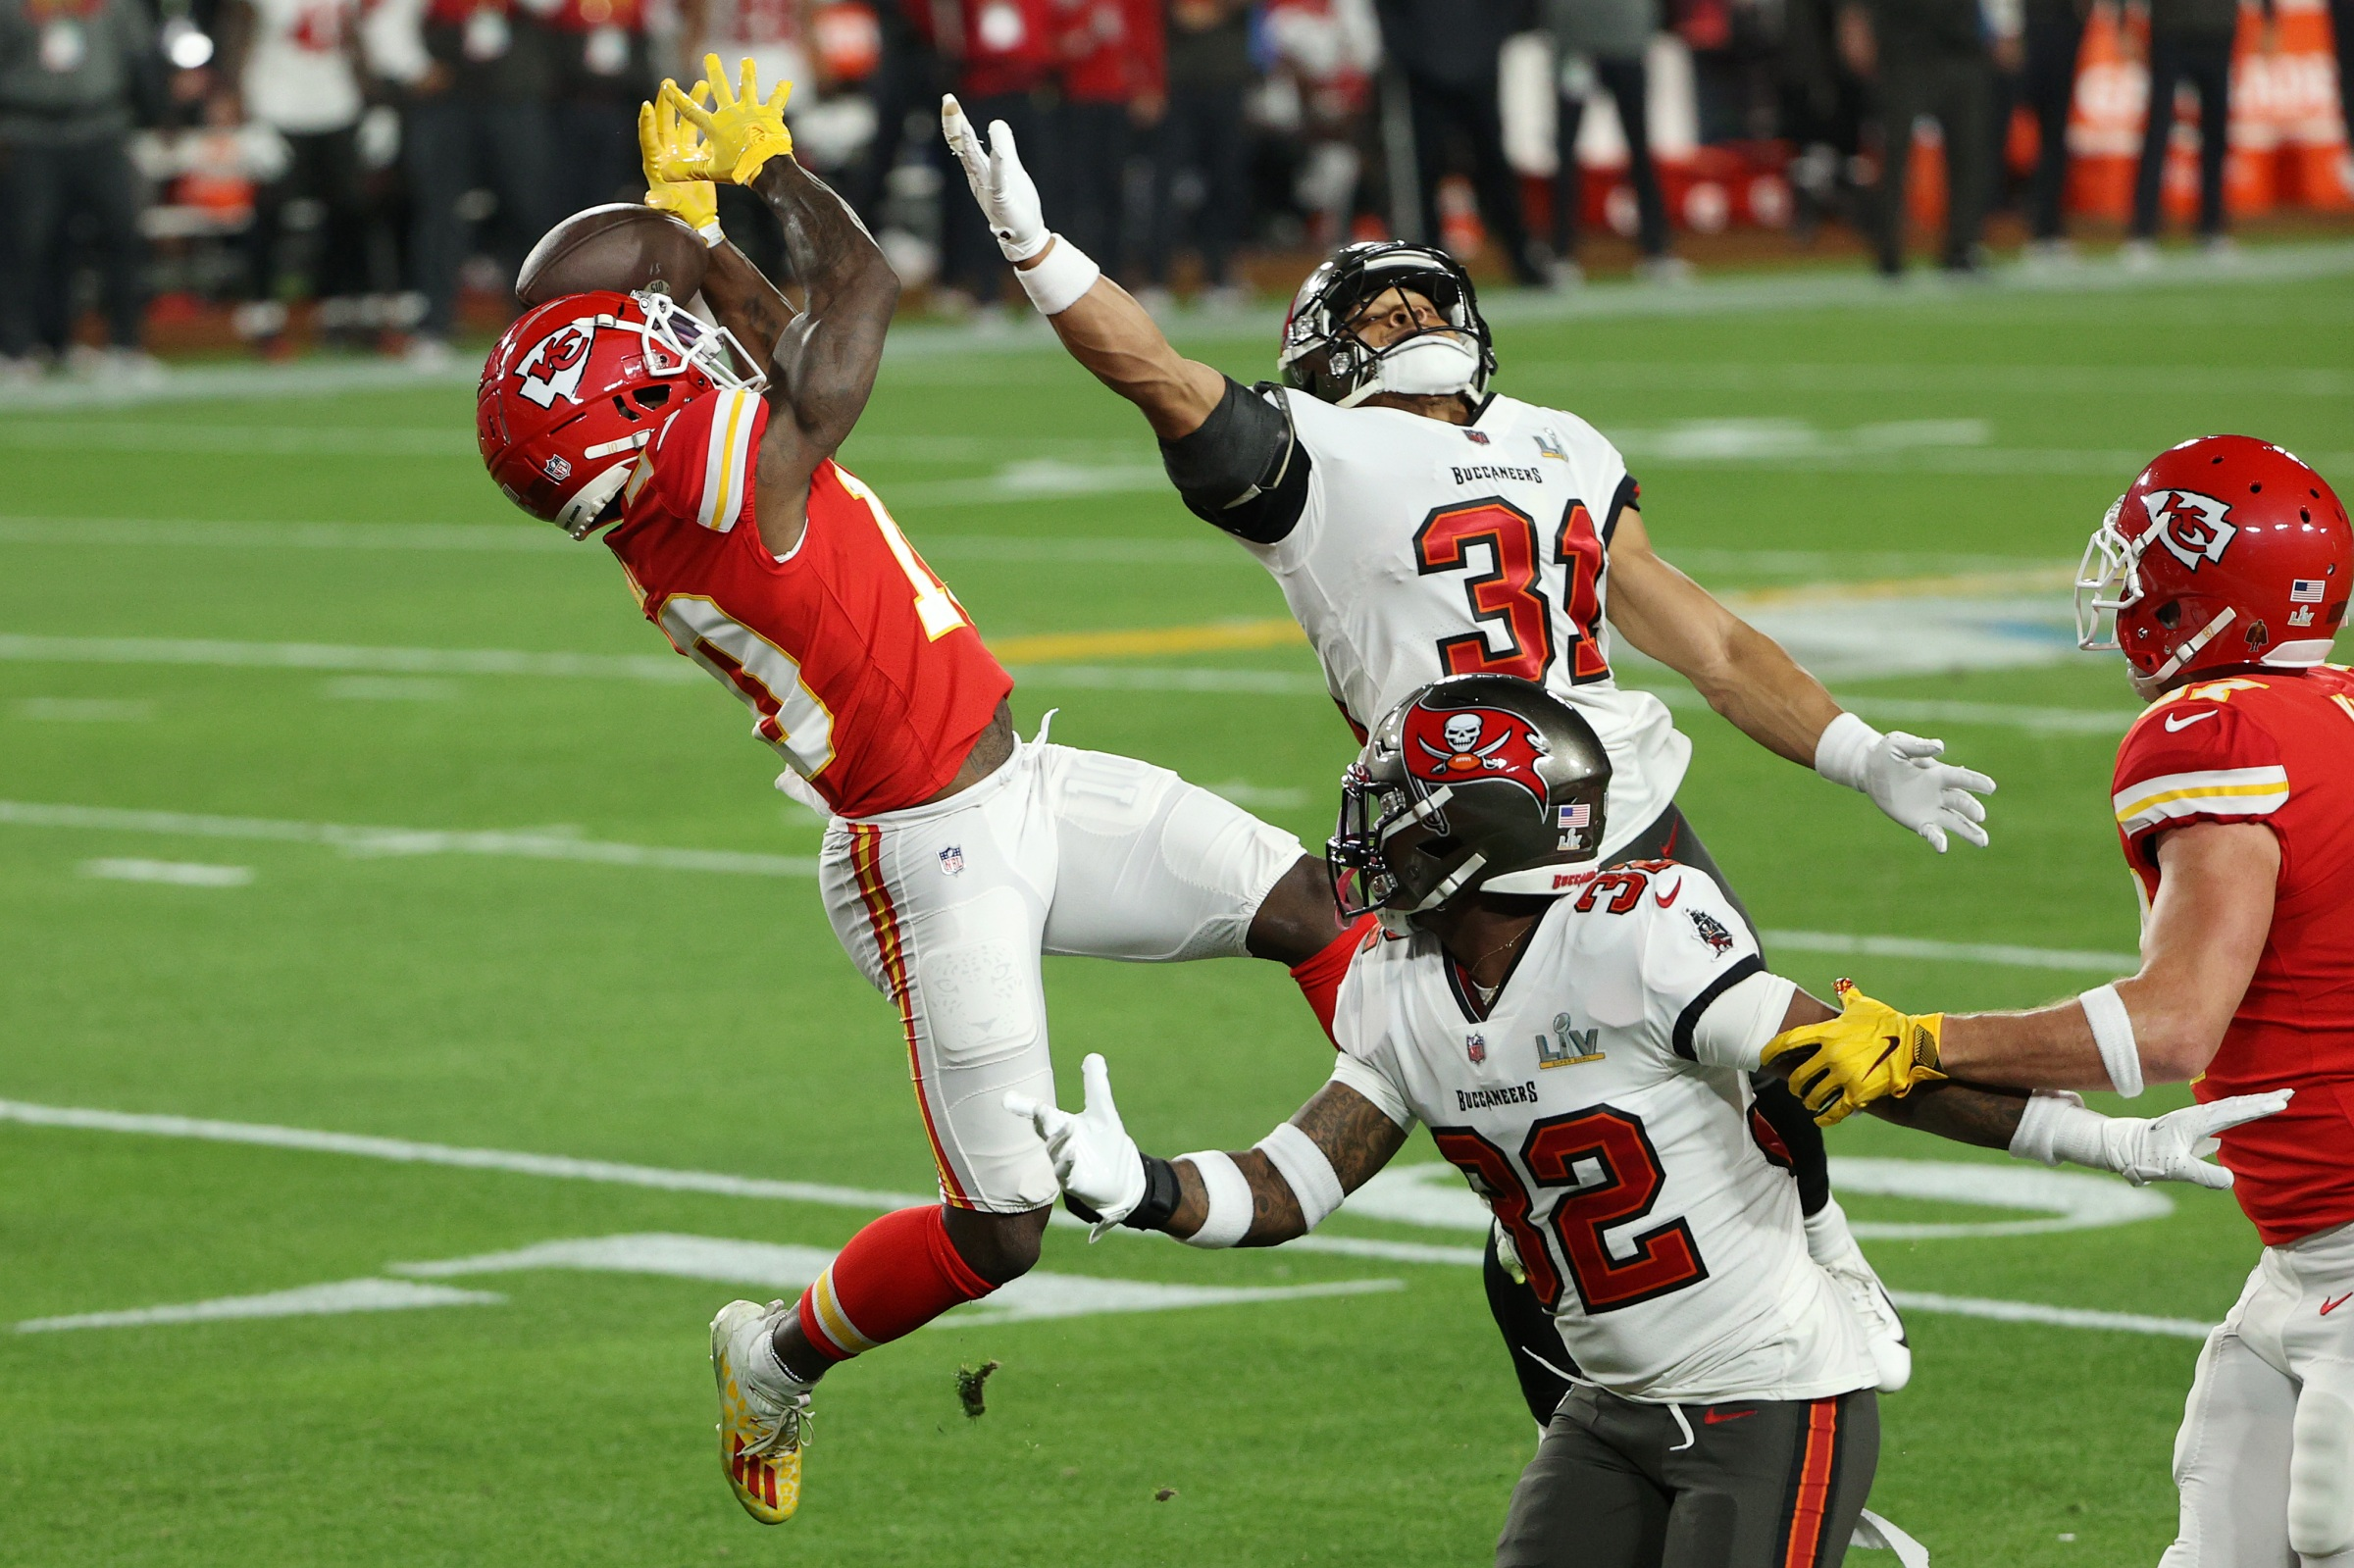 Tyreek Hill #10 of the Kansas City Chiefs is unable to make a reception